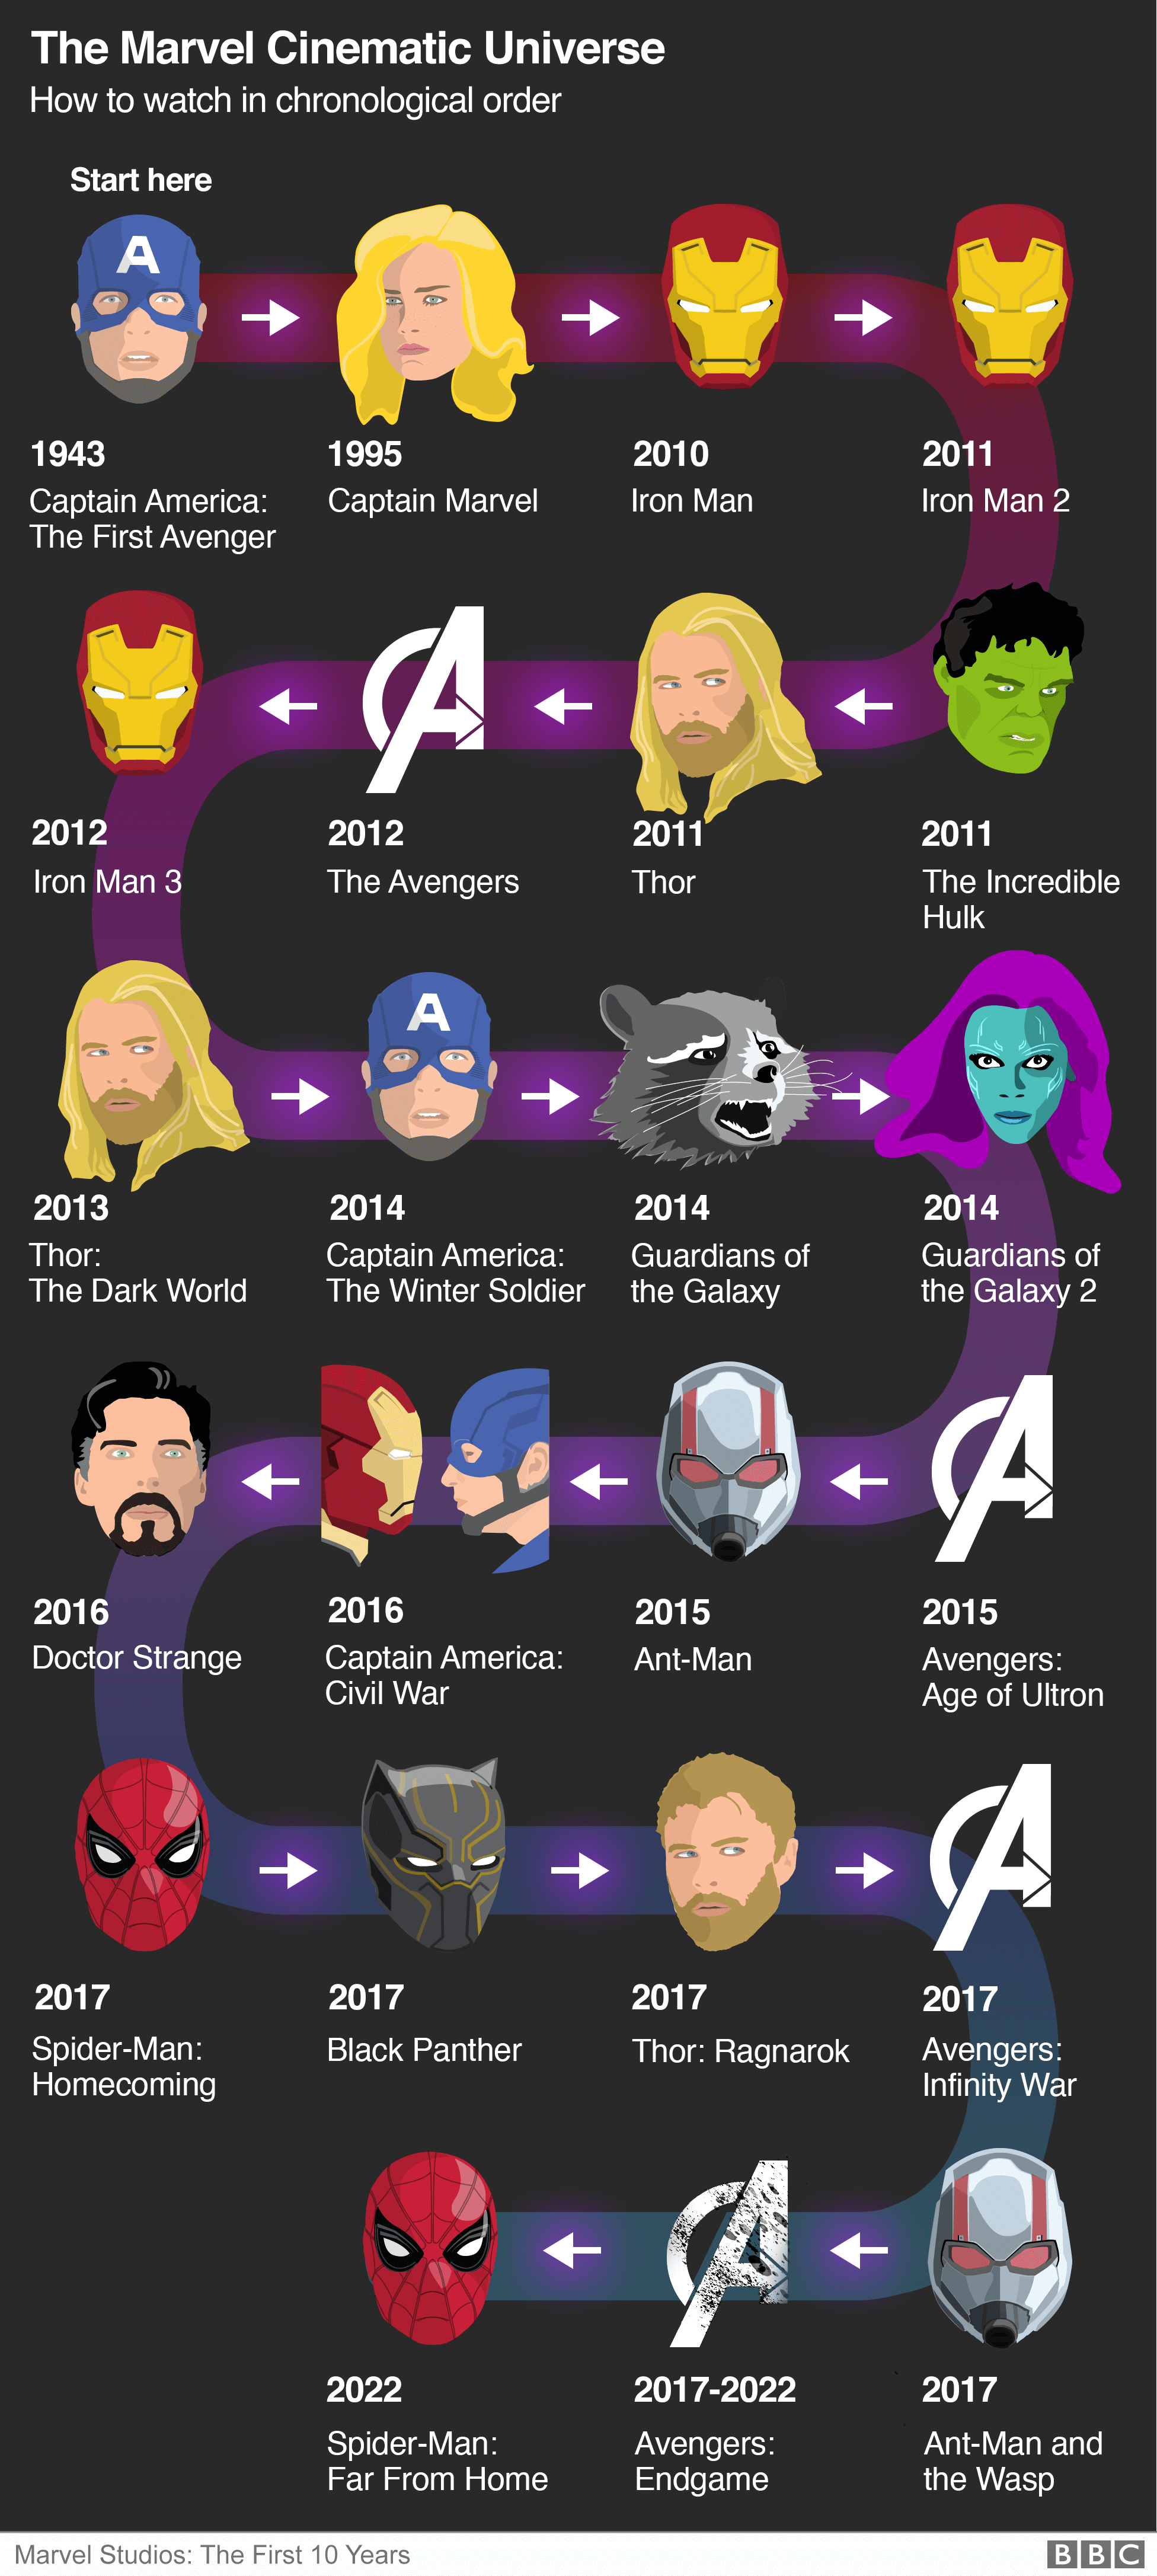 Graphic: How to watch the Marvel movies in chronological order